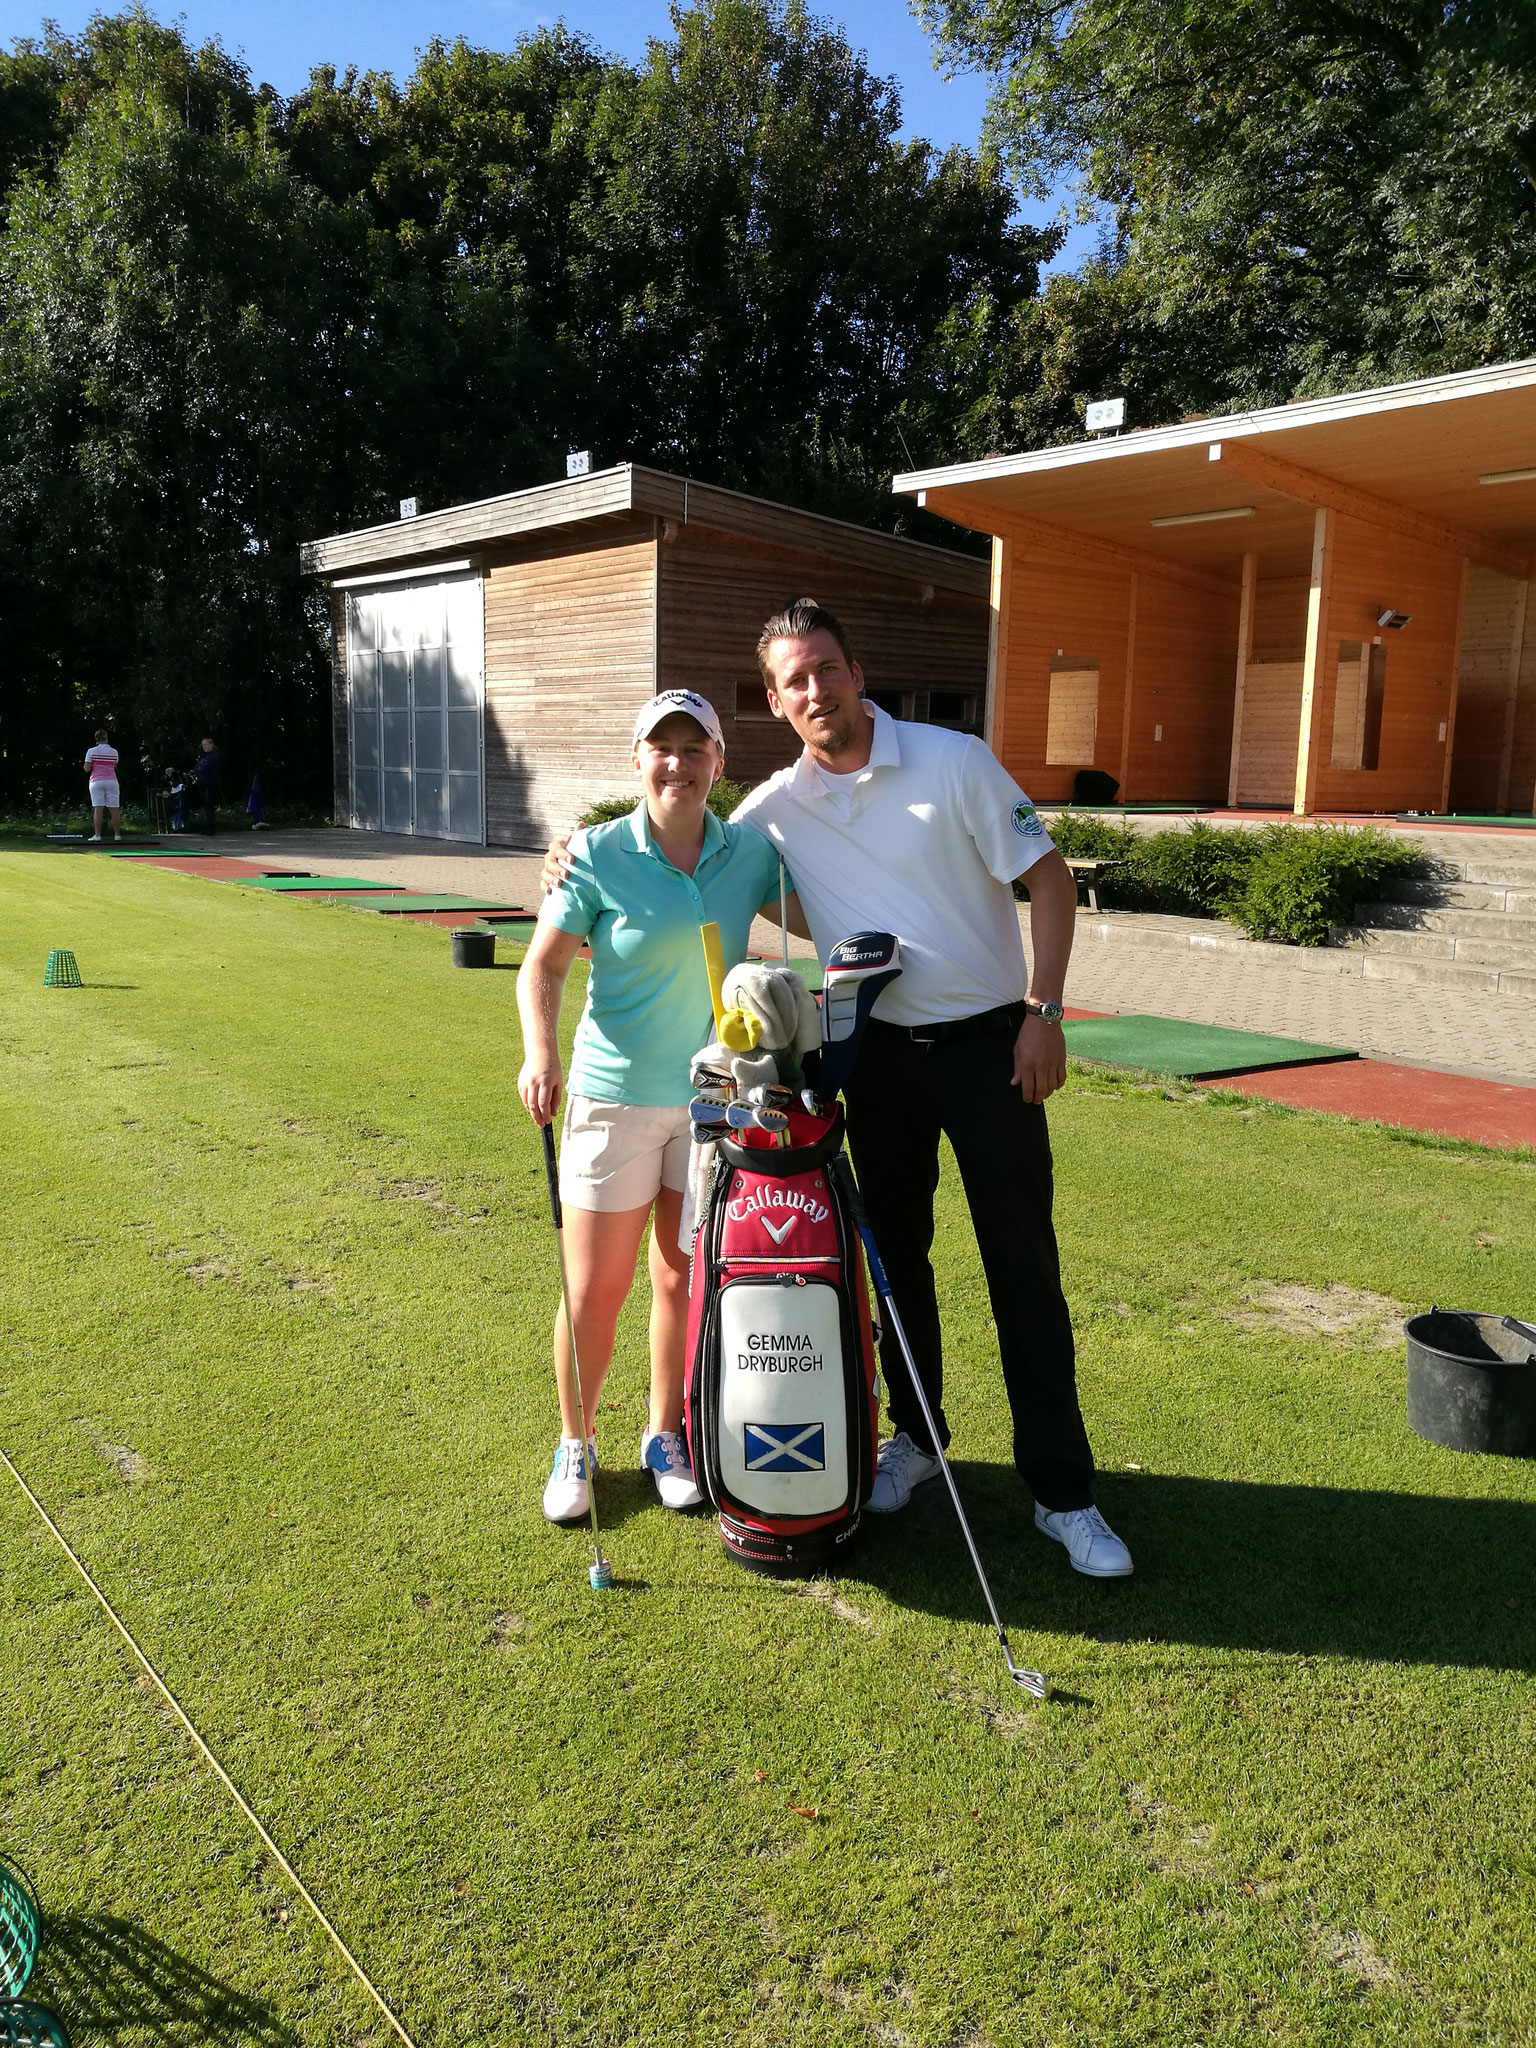 Gemma Dryburgh, Ladies European Tour Player